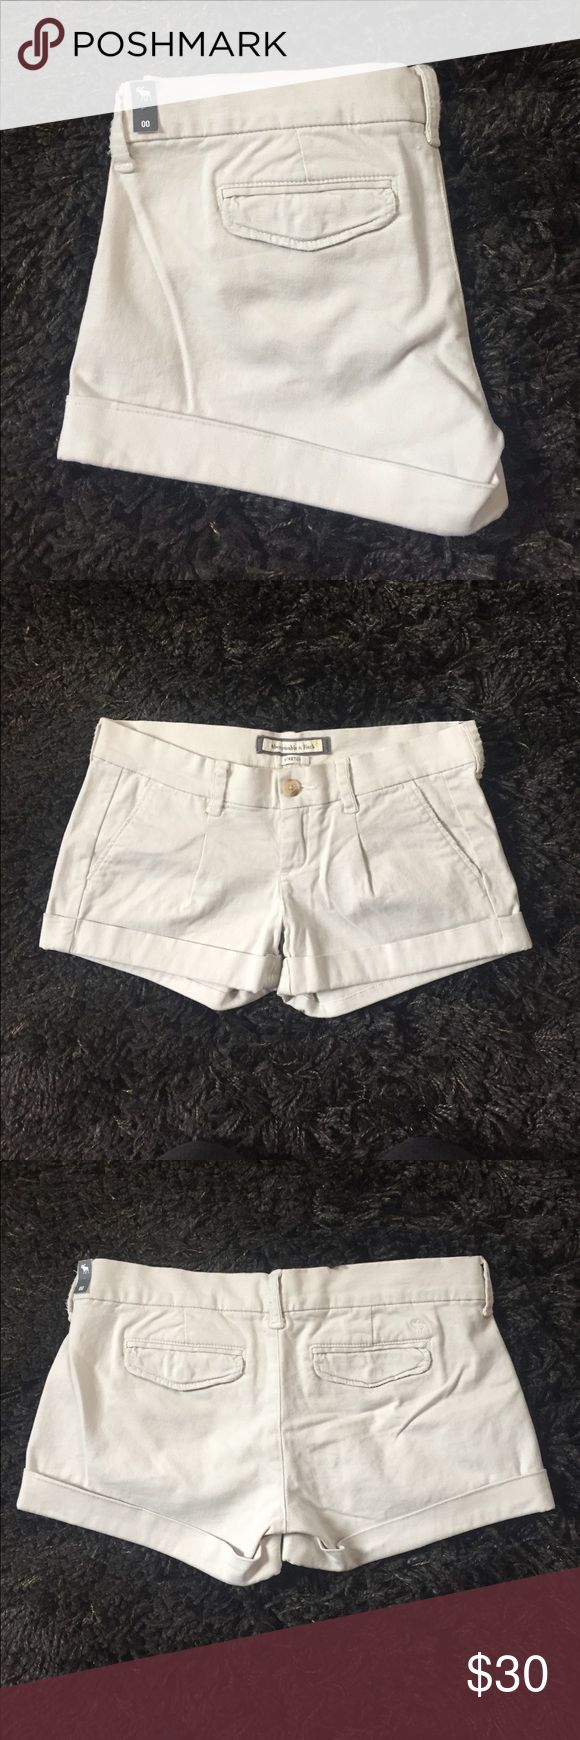 Abercrombie and Fitch Khaki Stretch Shorts Brand new with tags. Abercrombie & Fitch Shorts